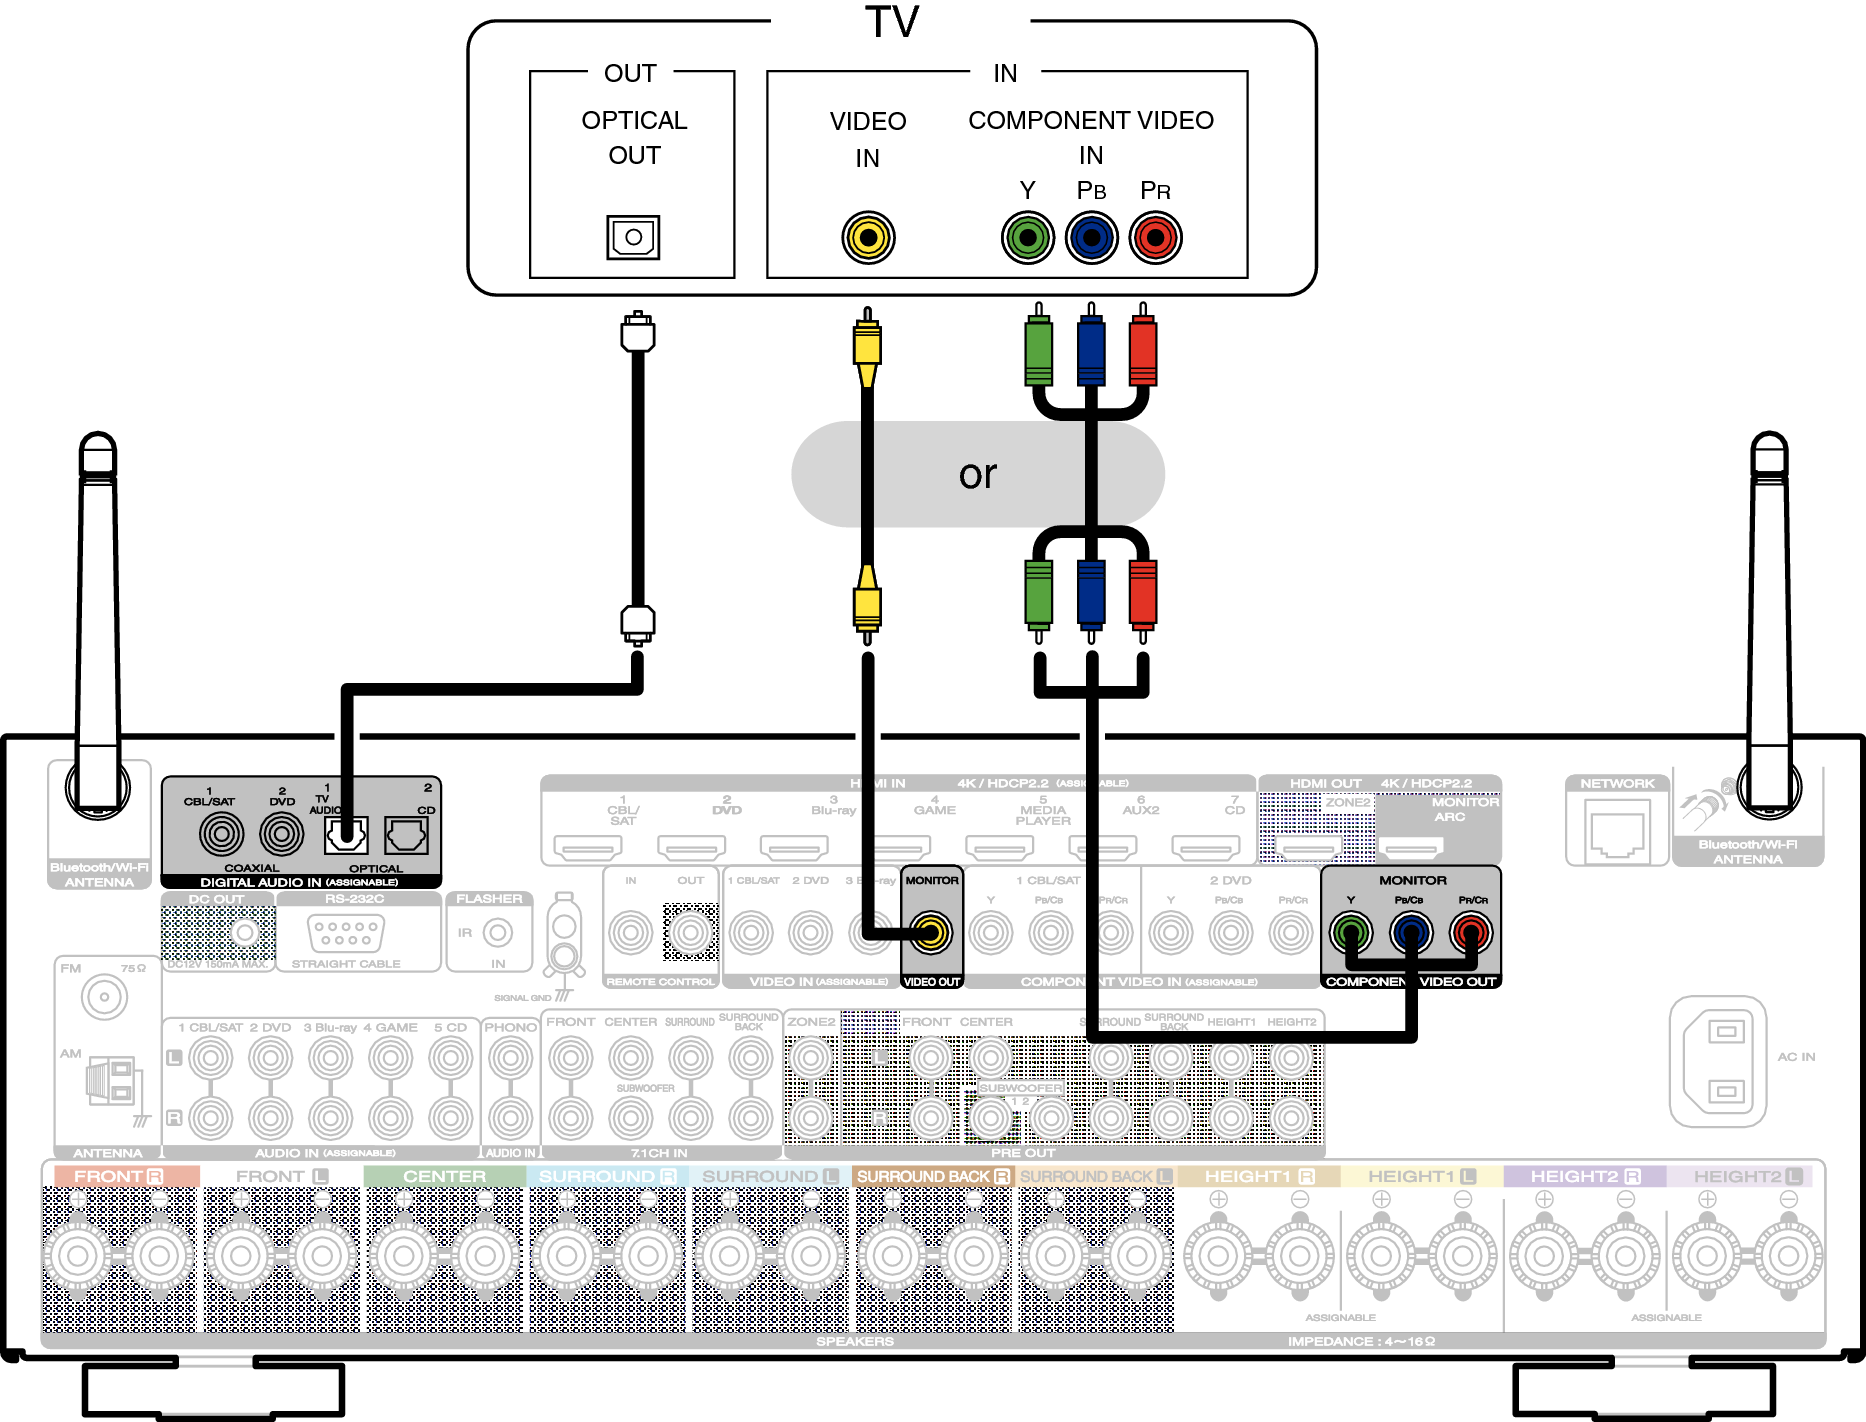 Connection 3 : TV equipped without an HDMI connector SR6011